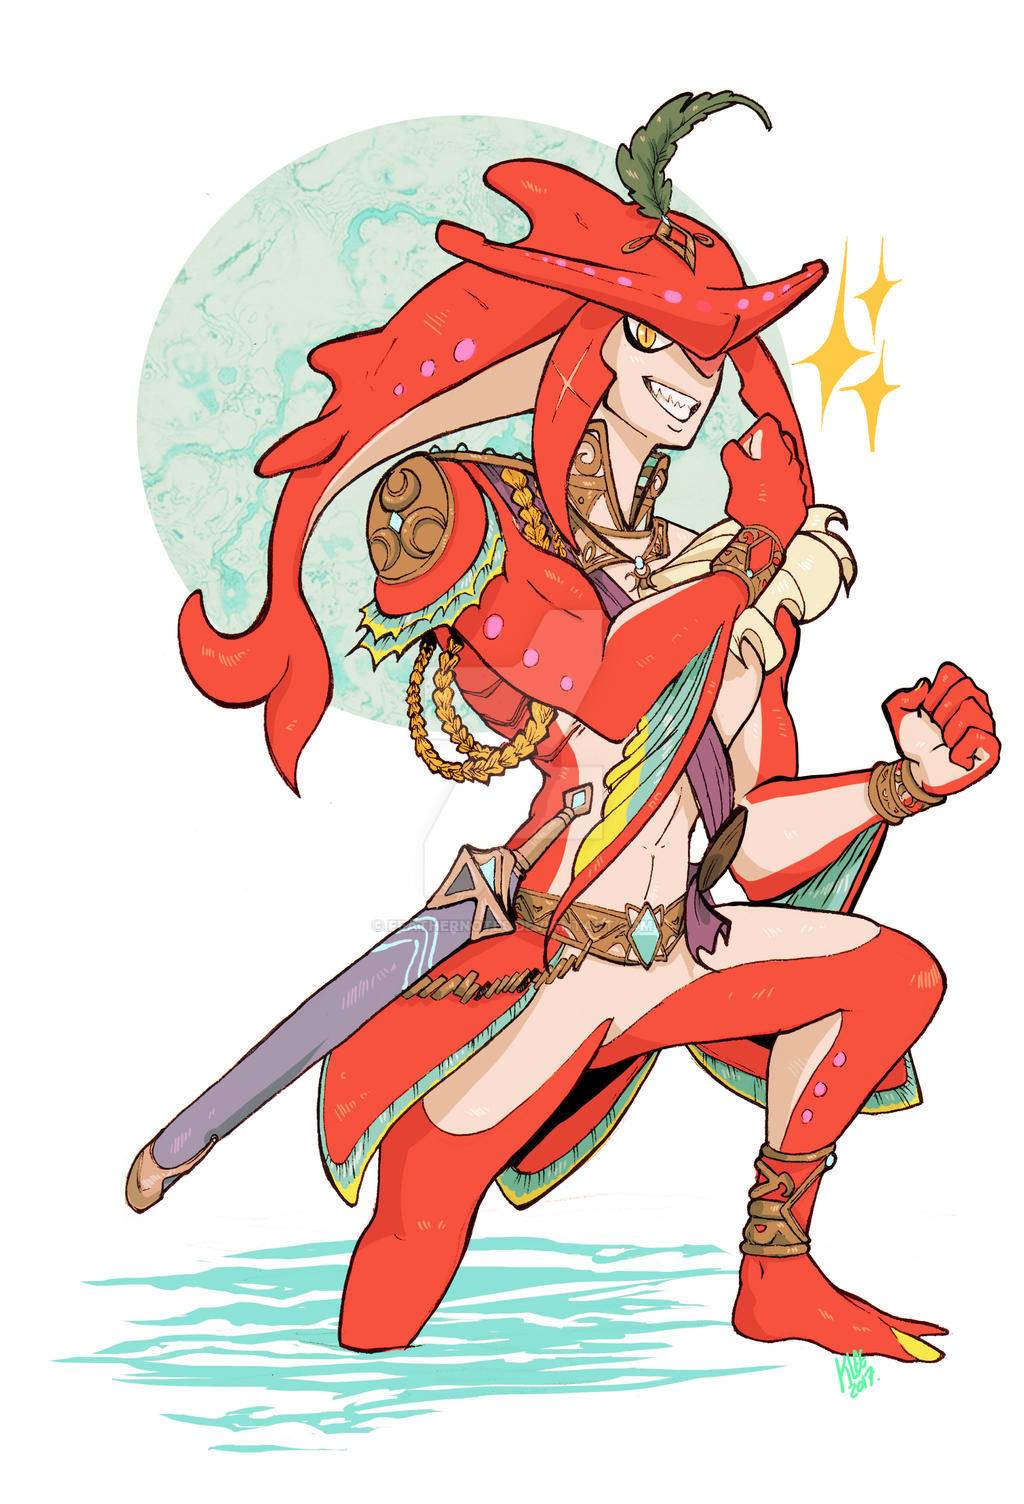 sidon chat Tags: anthro belch belly big belly breath of the wild burp burping digestion furry inside view internal view legend of zelda m/m male pred male prey onomatopoeia oral vore prince sidon size difference soft vore stomach stomach acids stomach noises zora.